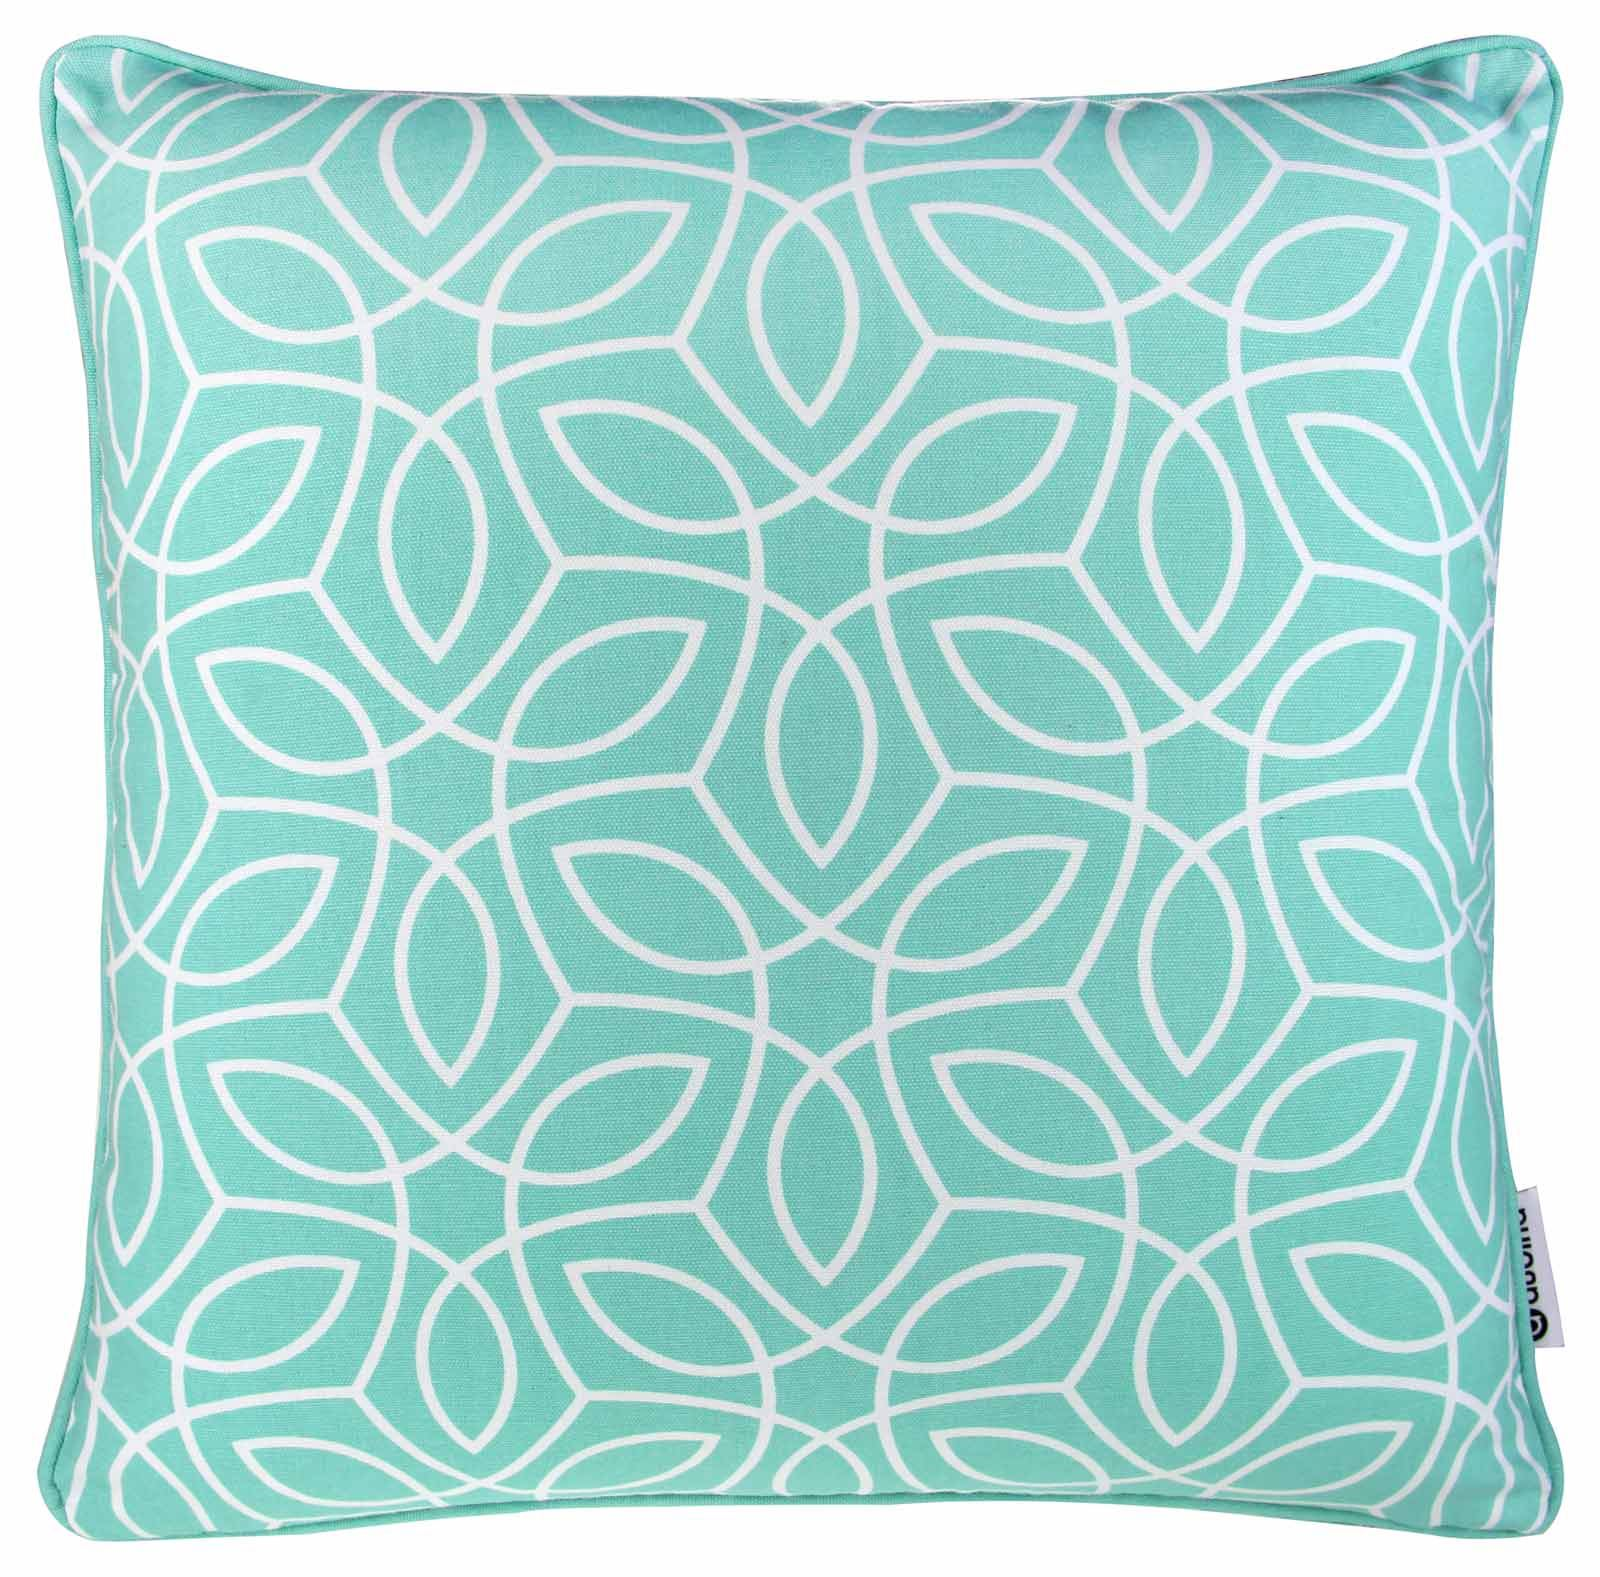 Modern Decorative Pillow Covers : MODERN GEOMETRIC CUSHION COVERS 100% COTTON PRINTED THROW PILLOW COVER 18